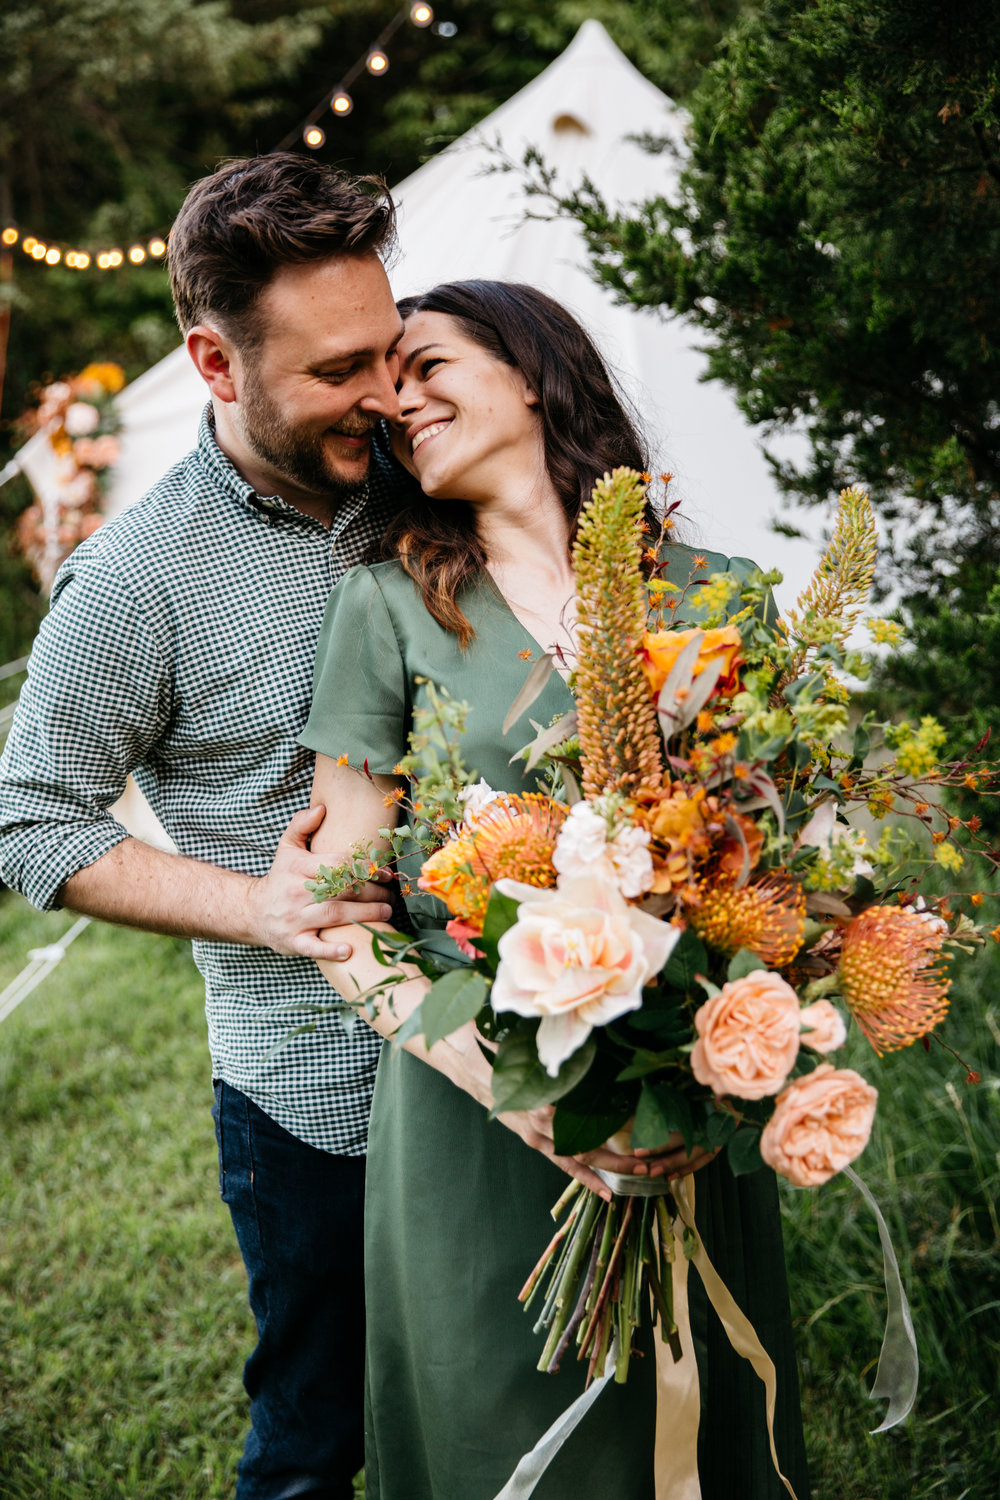 Romantic, Organic Styled Engagement Shoot Designed by Unions With Celia and Adam and Dawn Photography at The Co-Op Venue in Missouri.